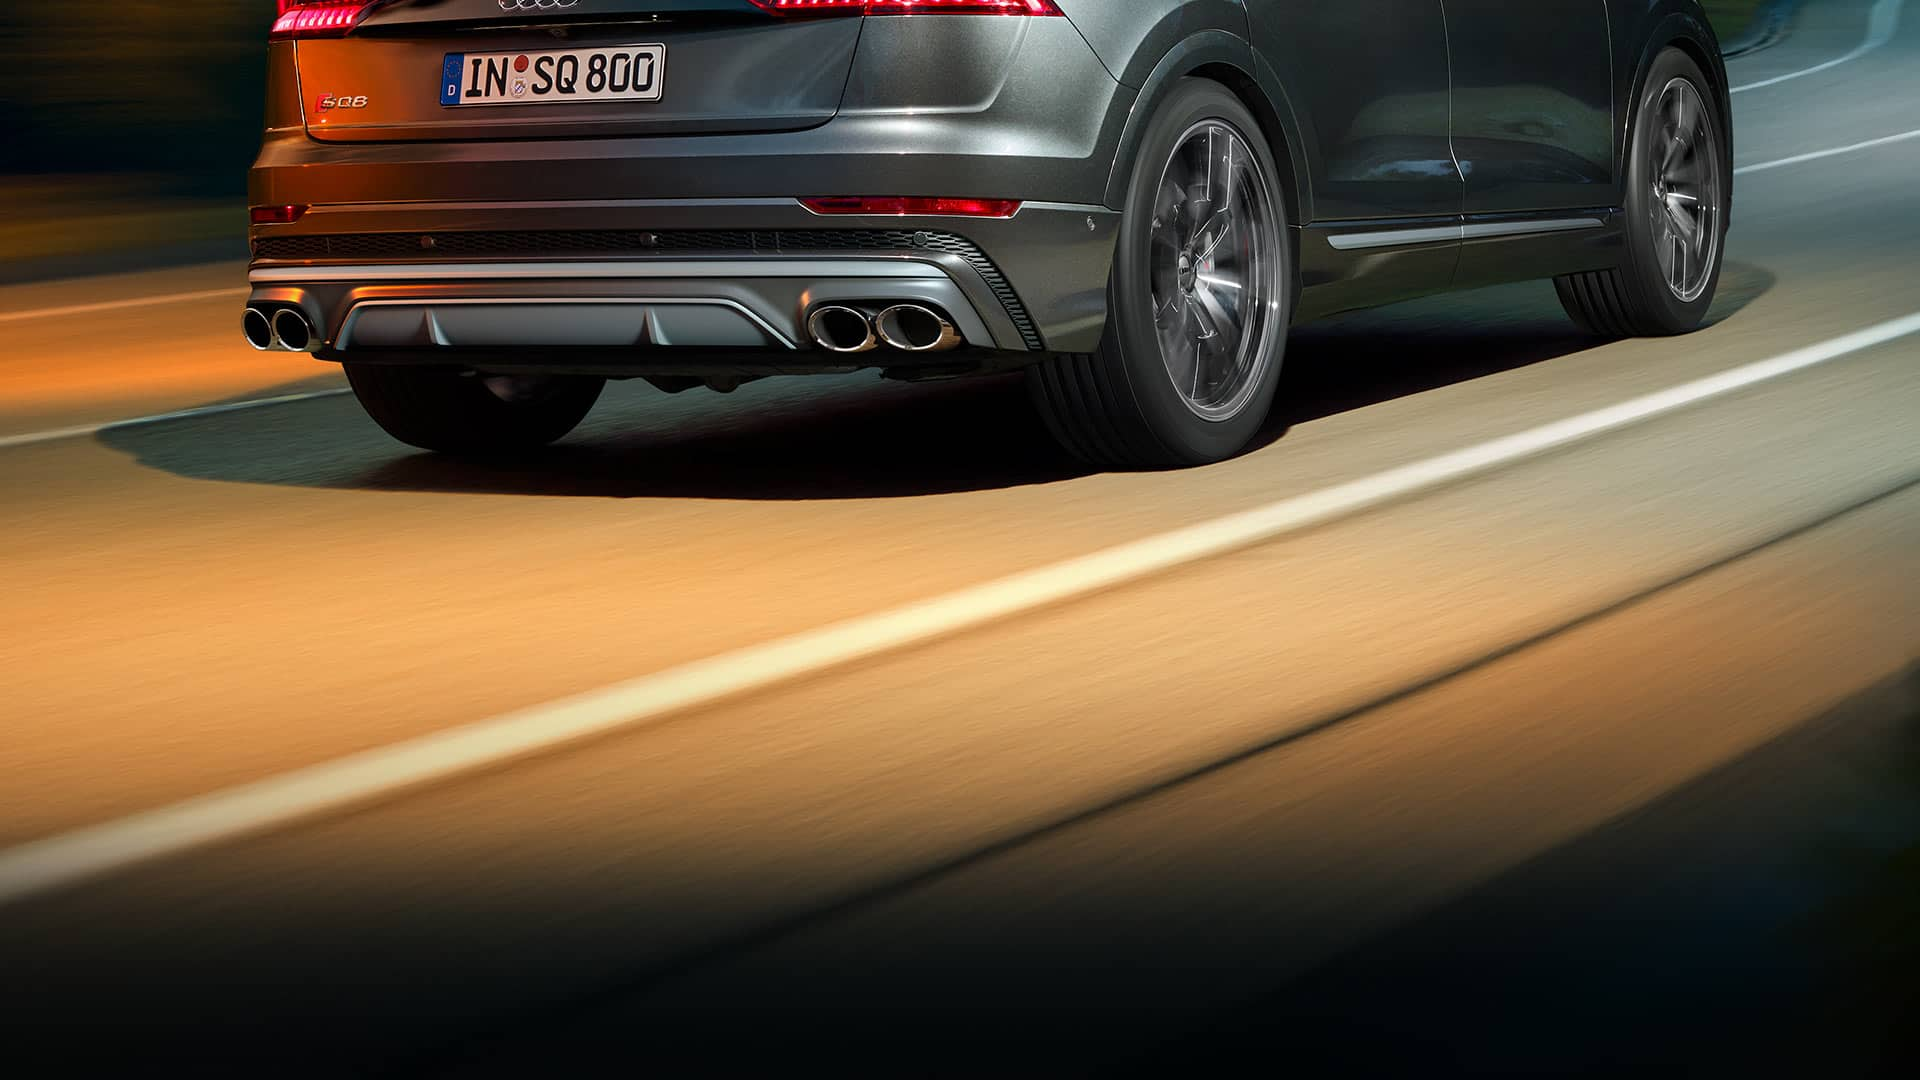 Audi SQ8 Wheels - Audi Australia